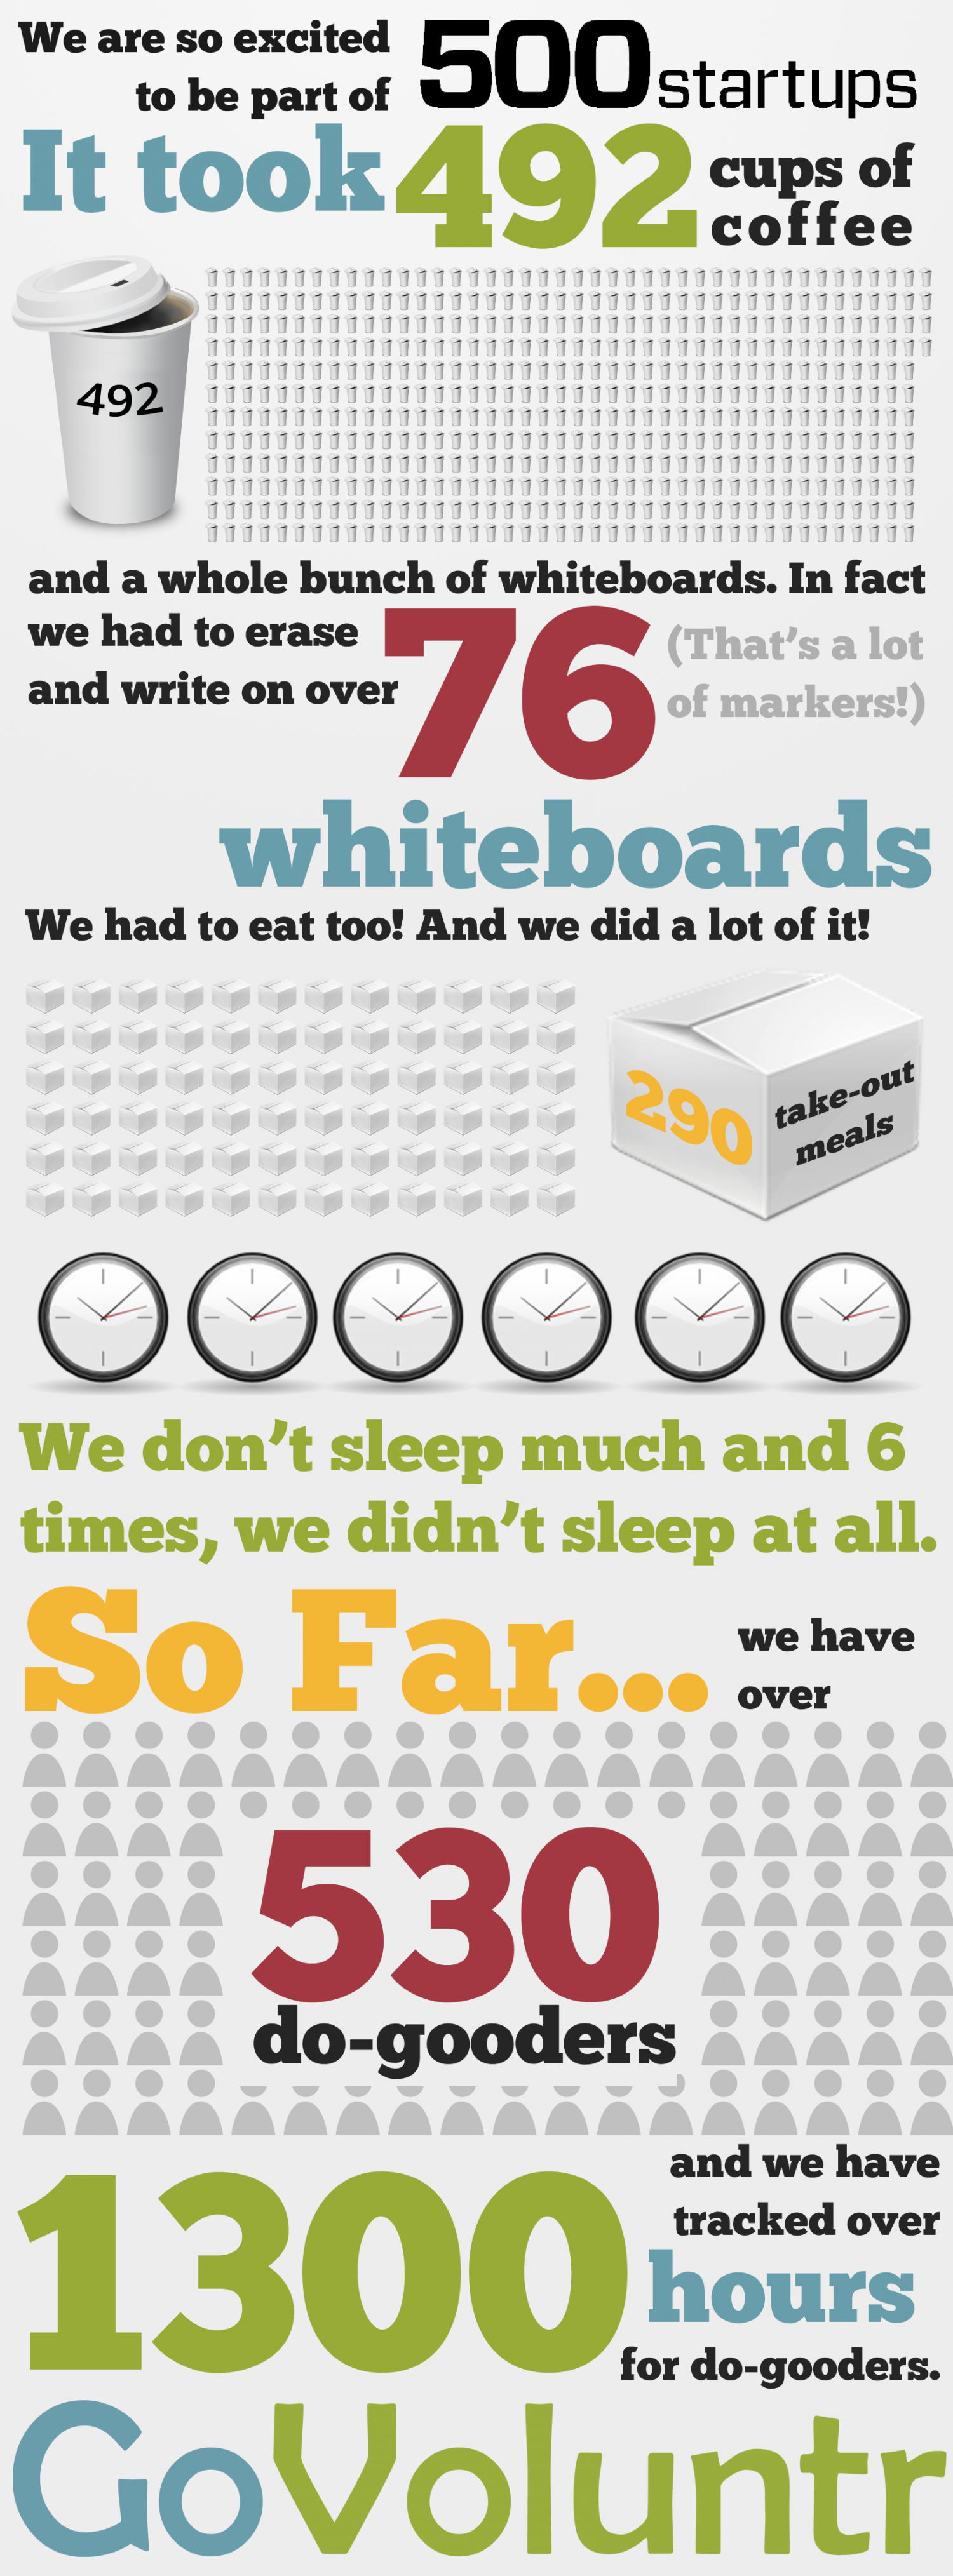 We Are So Excited To Be Part Of 500 Startups Infographic